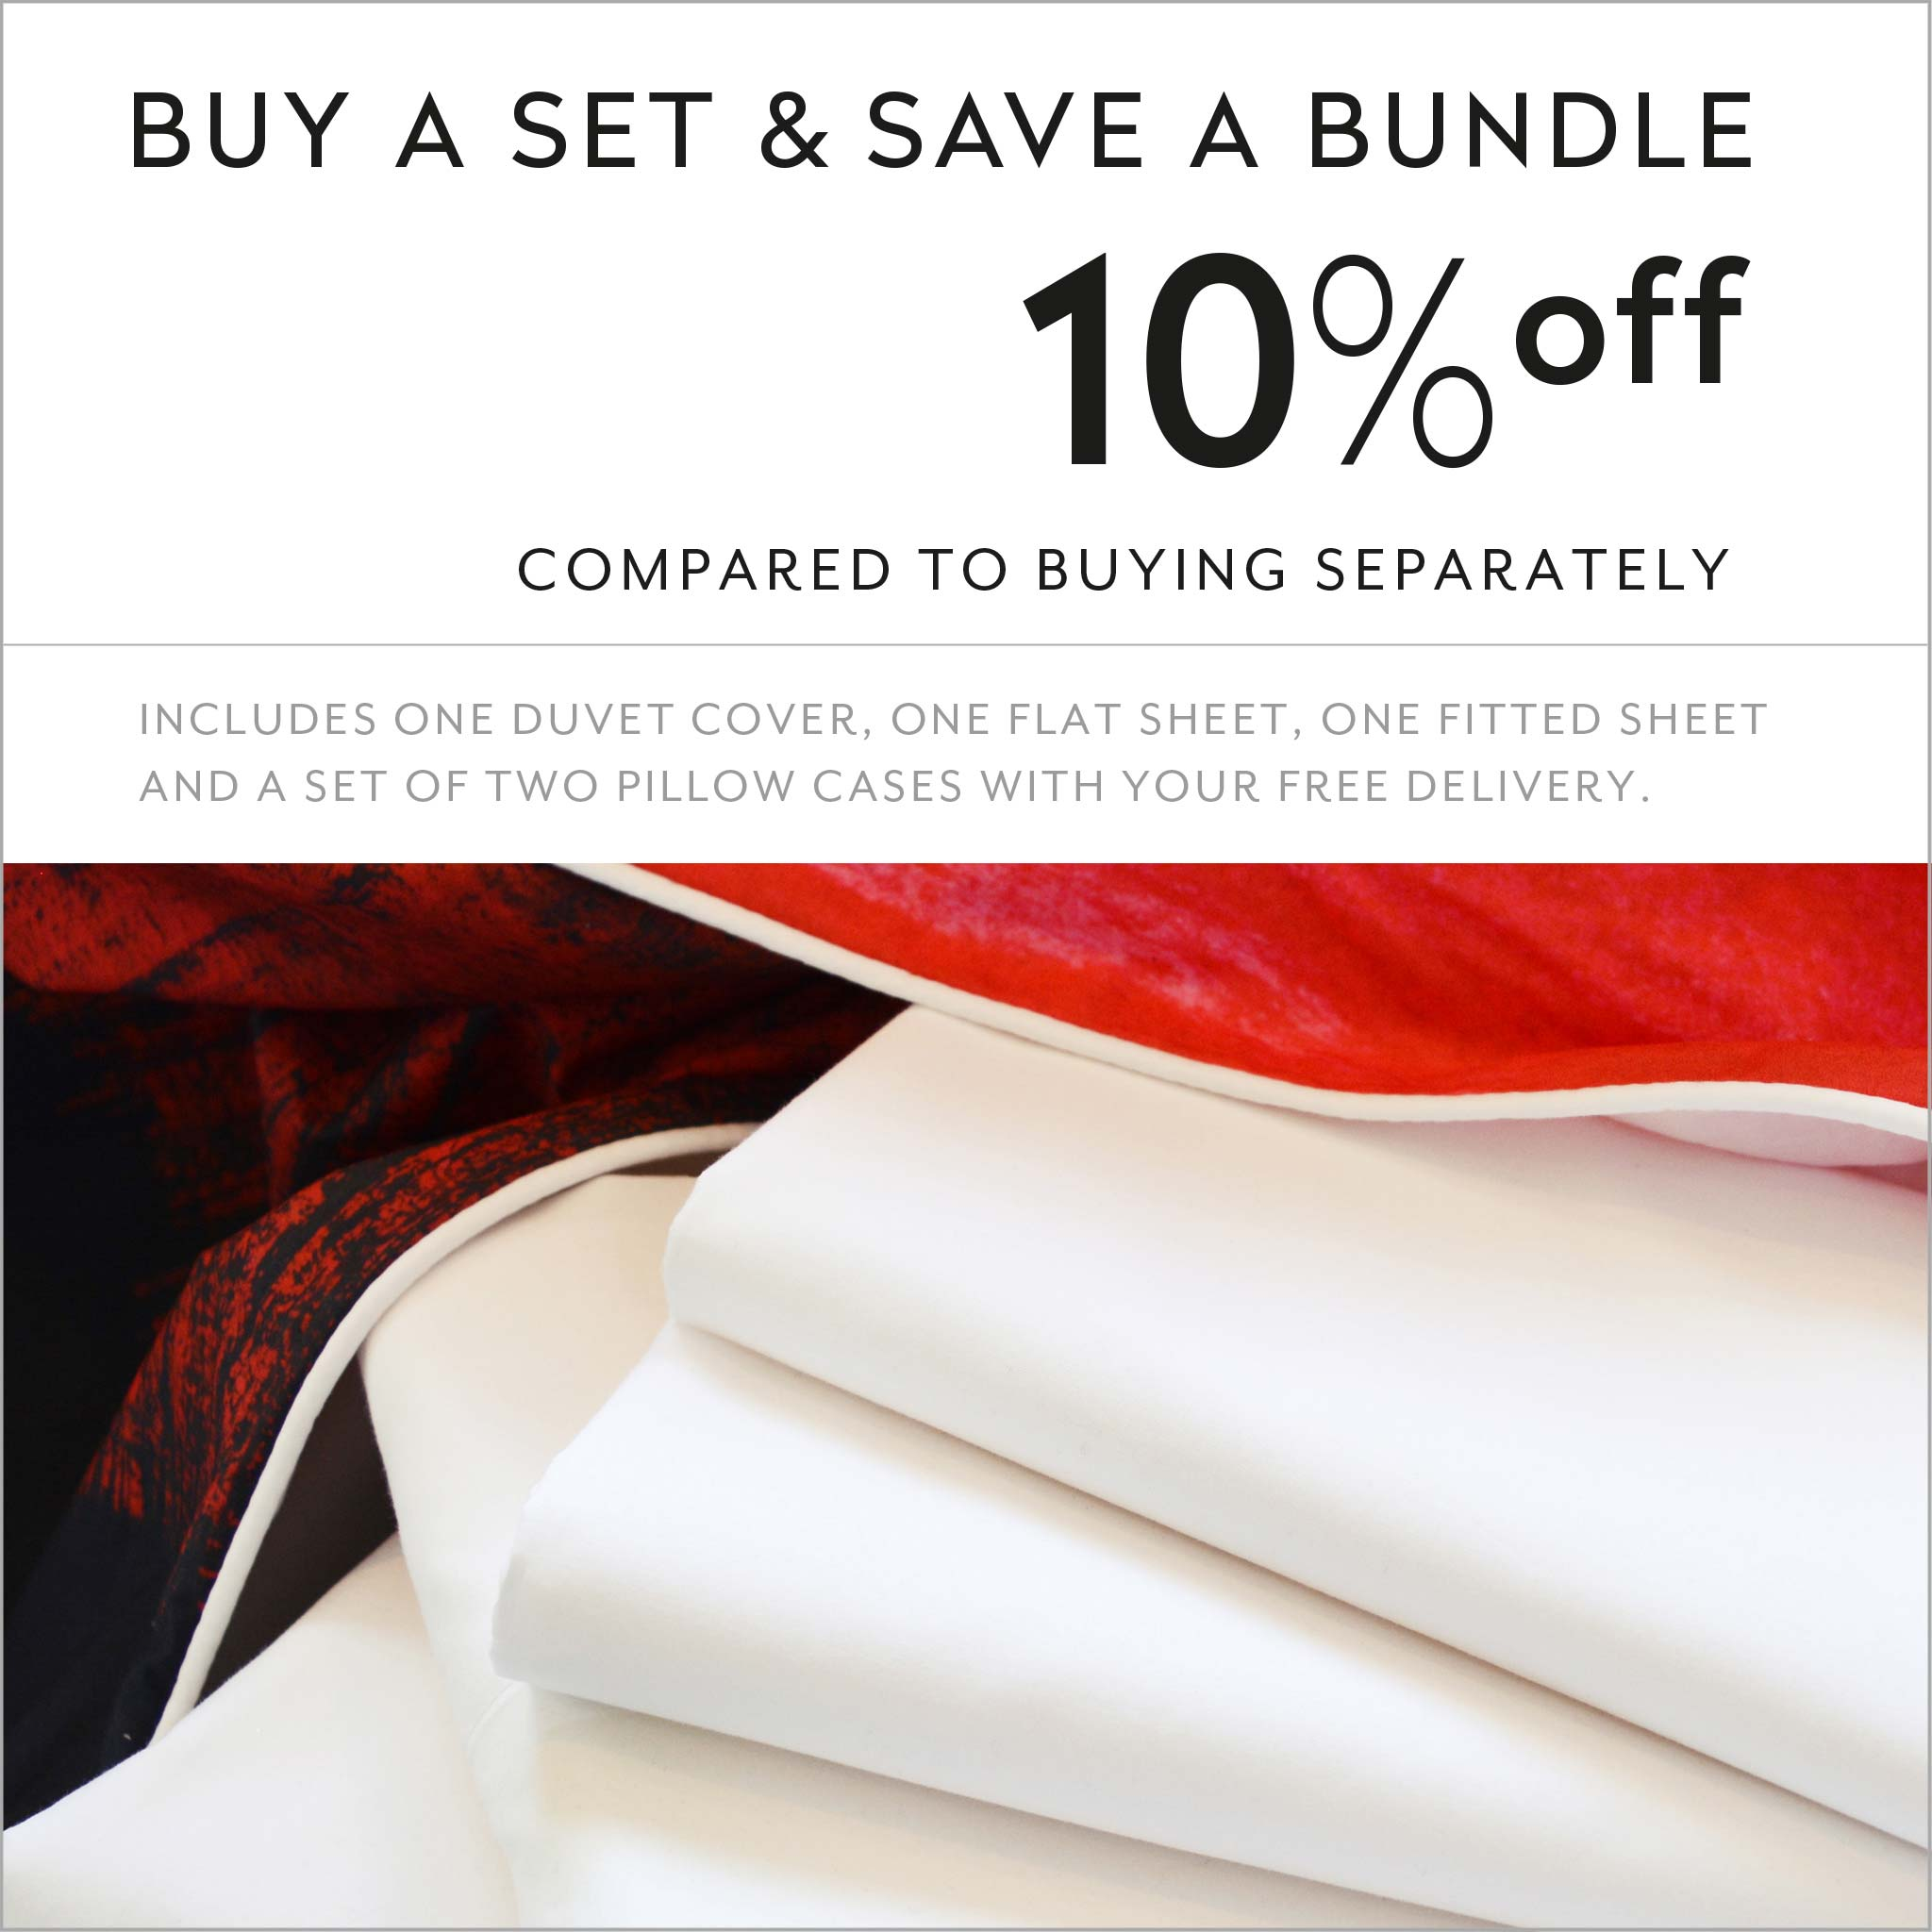 ZayZay luxury linen set save 10 percent La Sevillana duvet cover sheets pillowcase